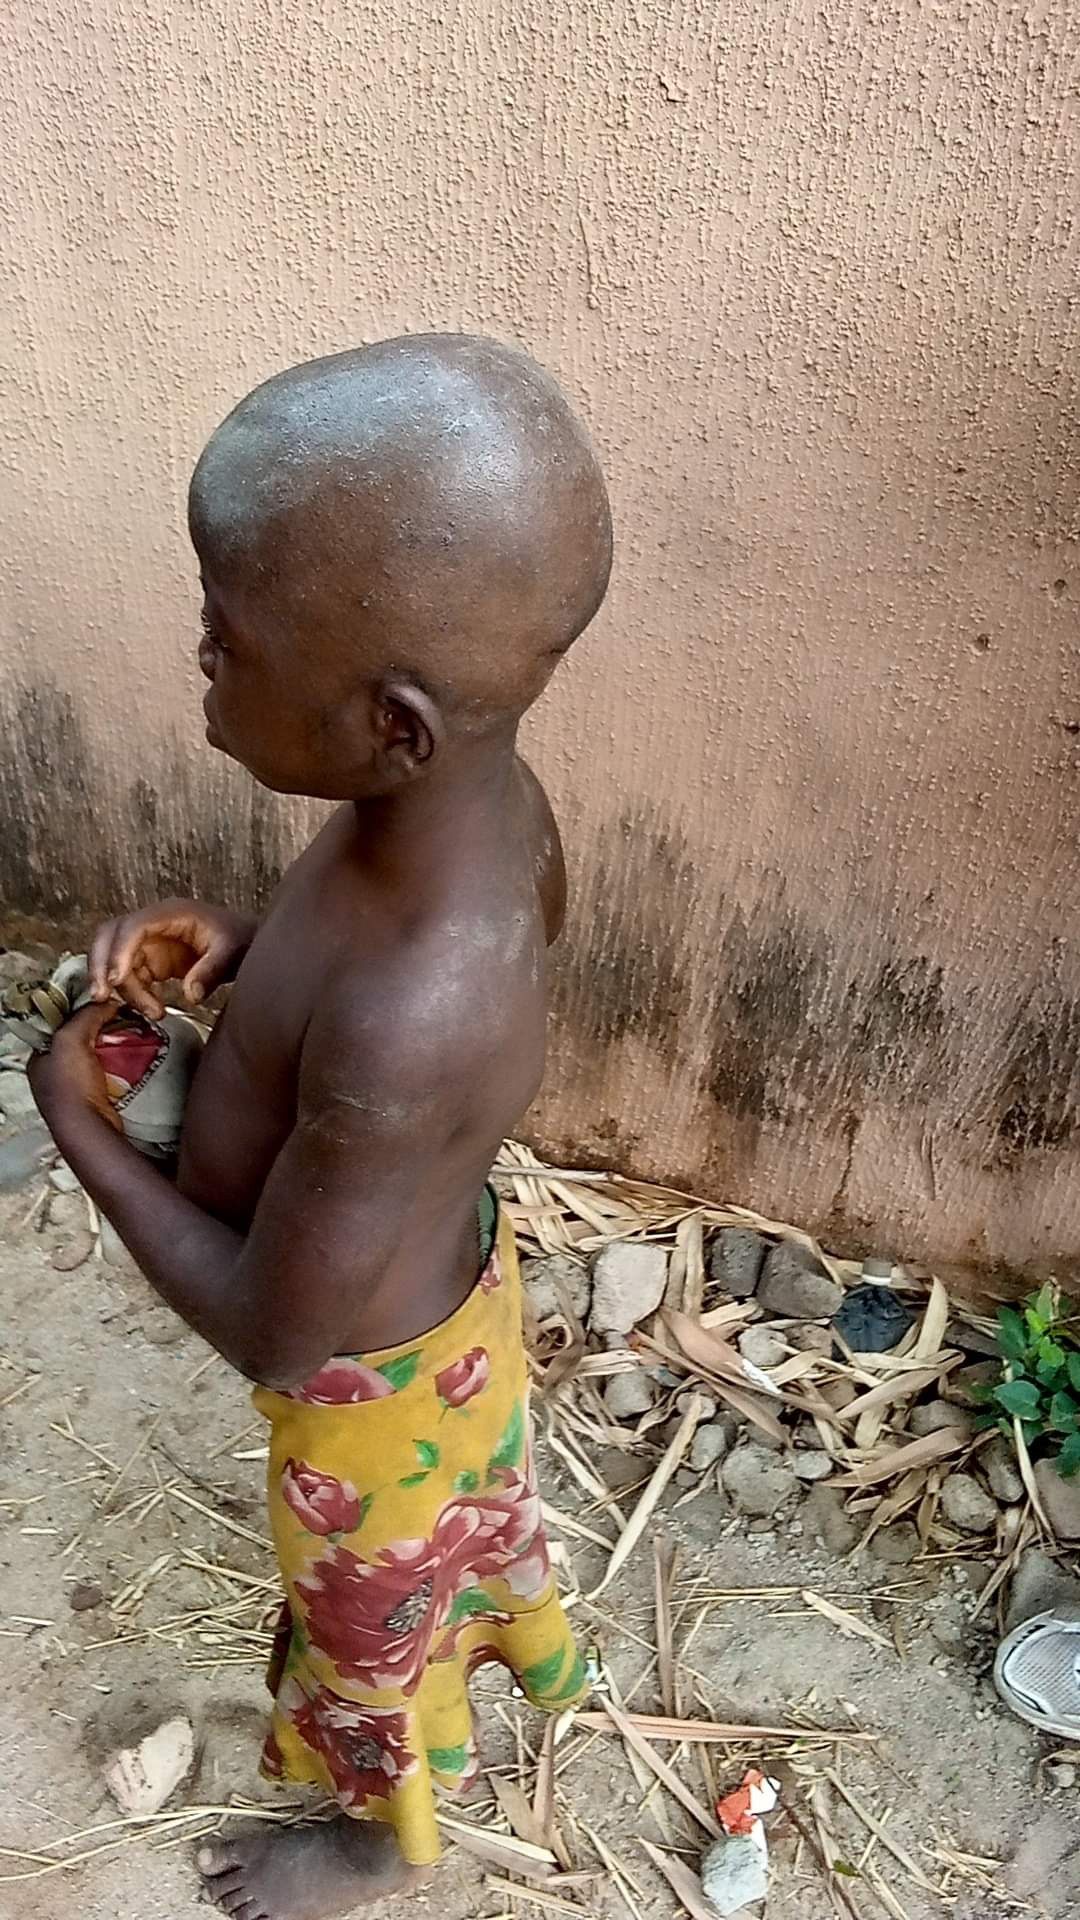 Young maid allegedly brutalised by caregivers after being accused of witchcraft in Anambra